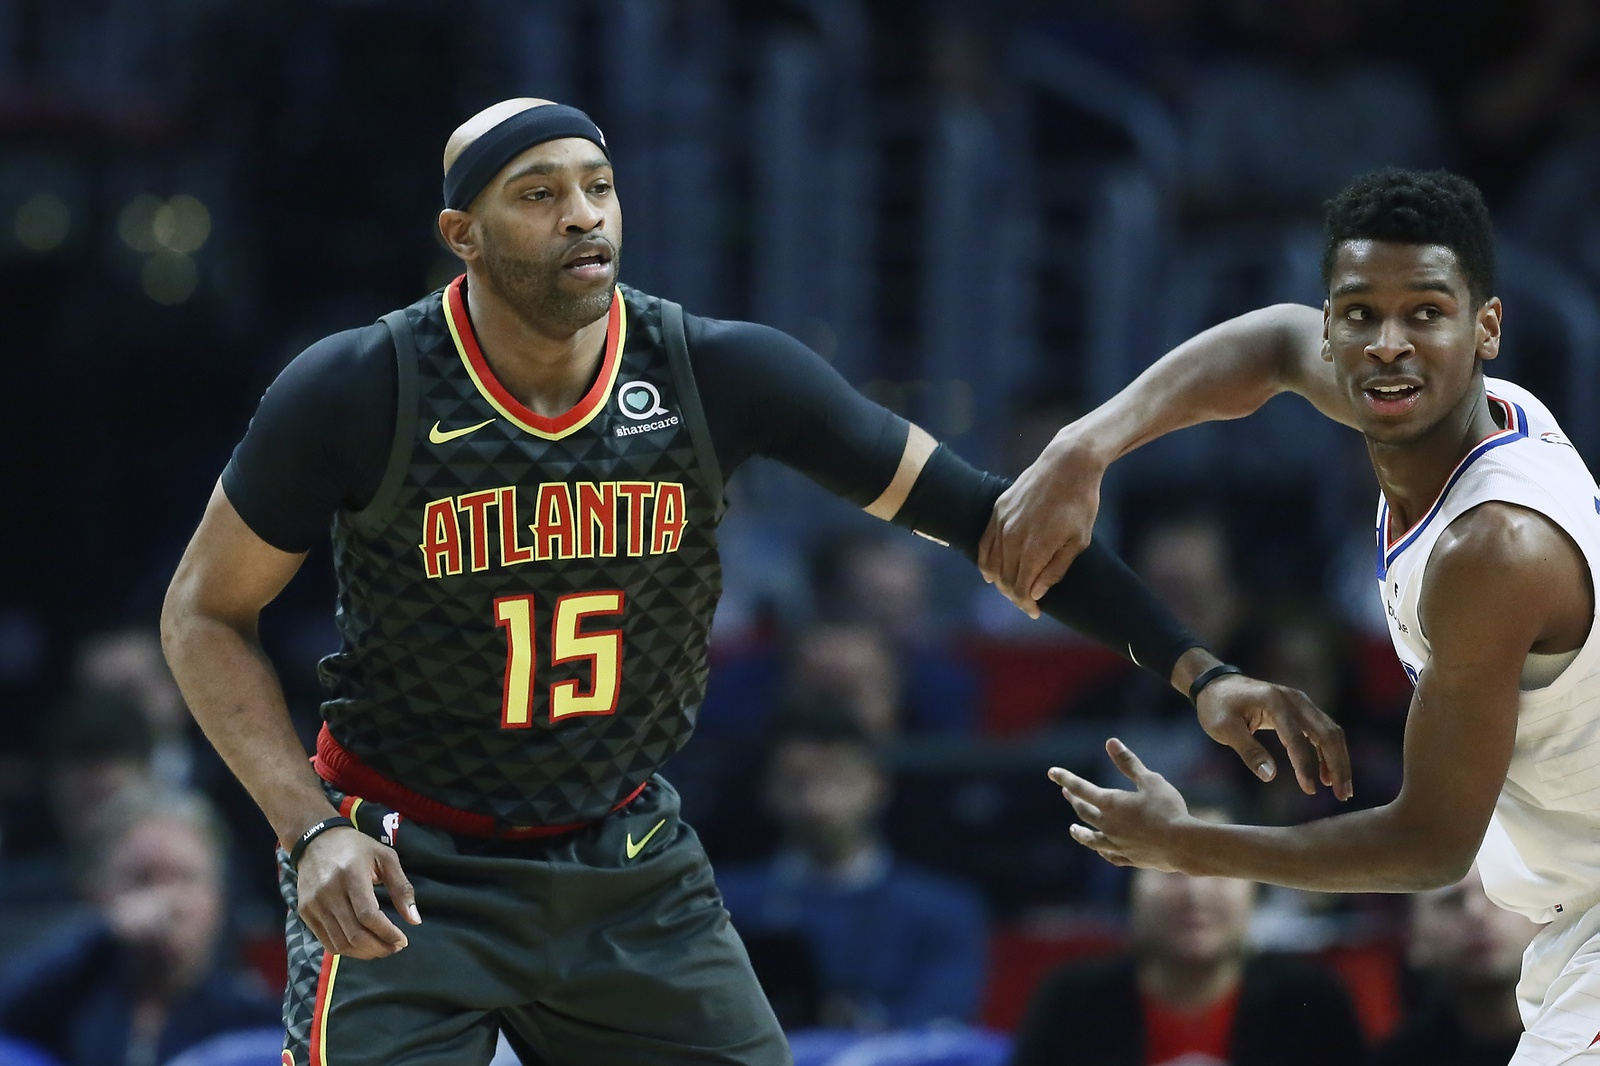 Vince Carter #15 of the Atlanta Hawks fights for position against the LA Clippers on January 28, 2019 at STAPLES Center in Los Angeles, California.